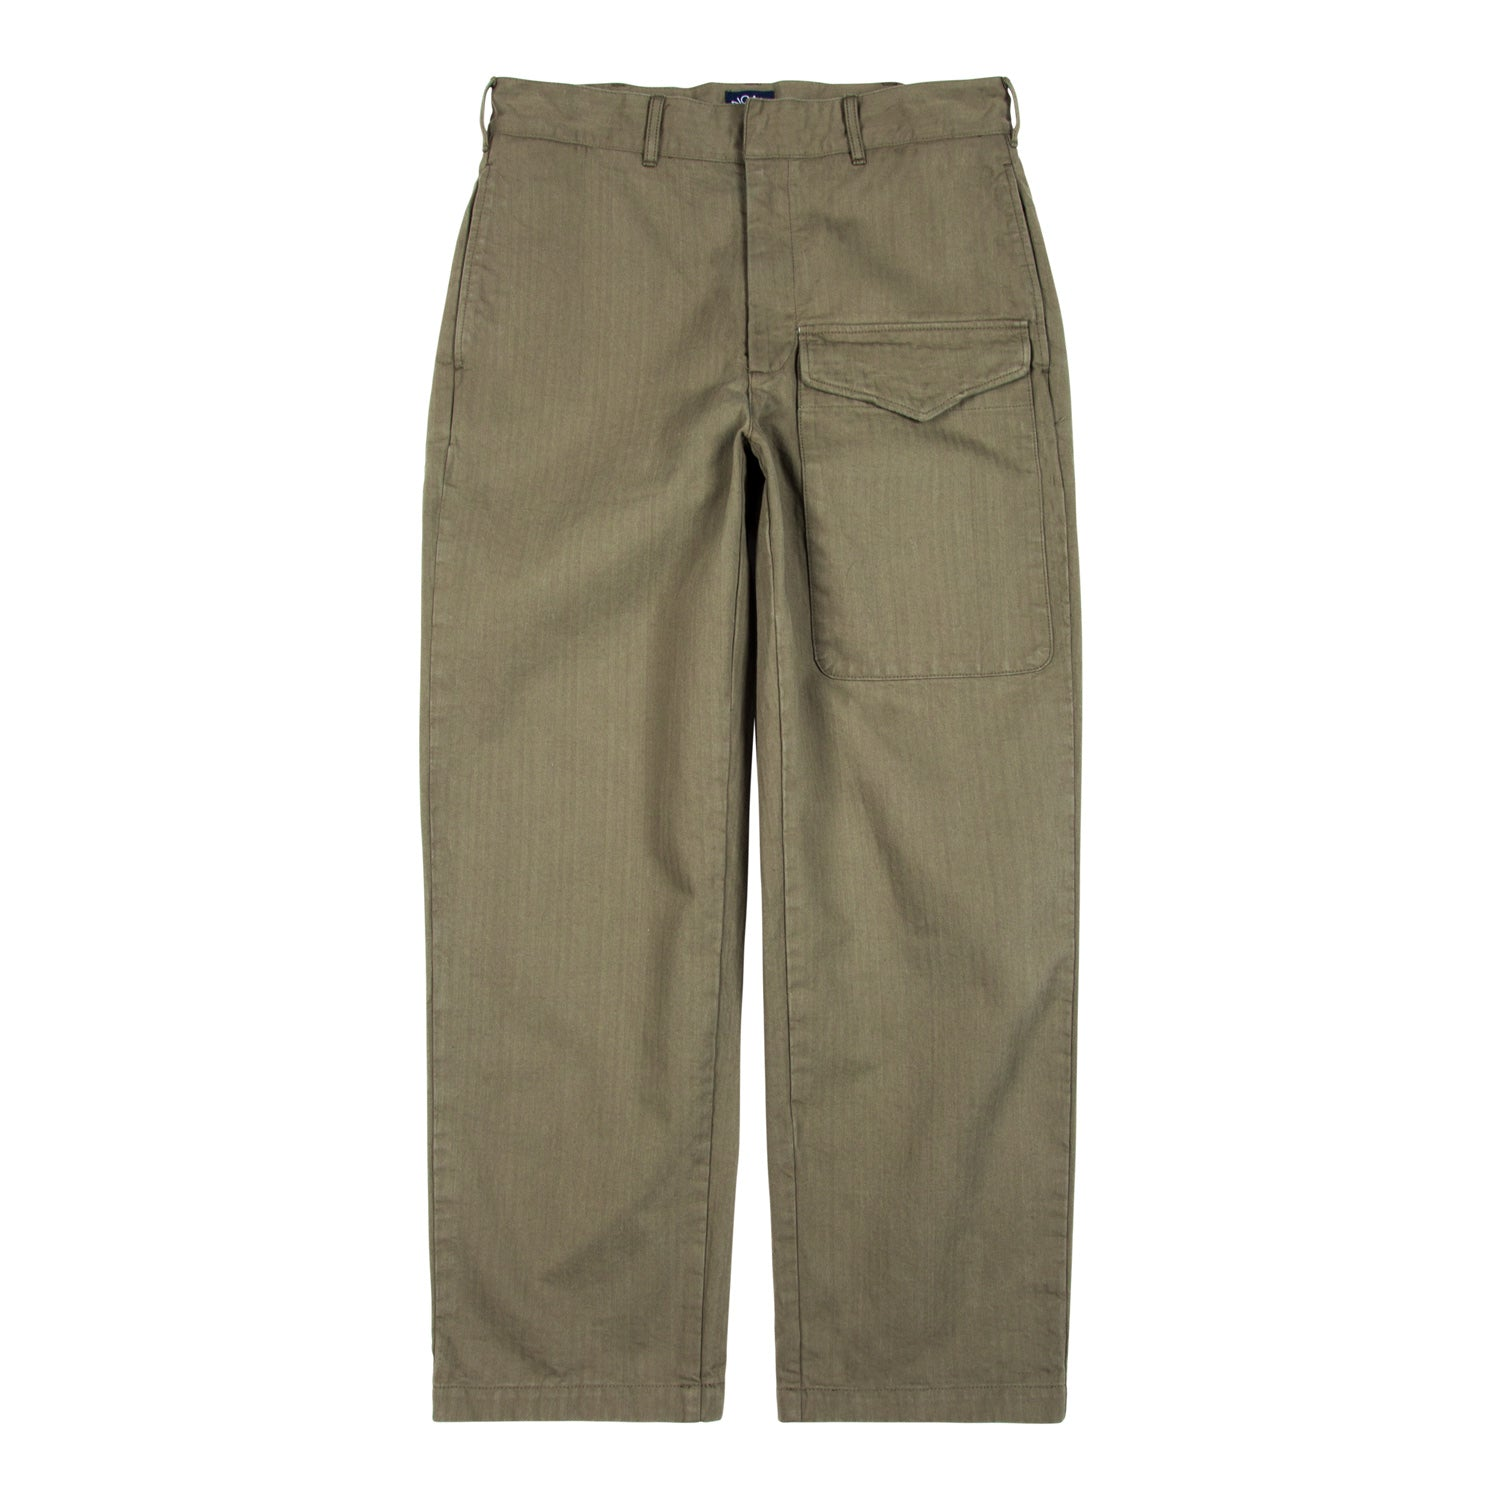 5-Pocket Jungle Pant